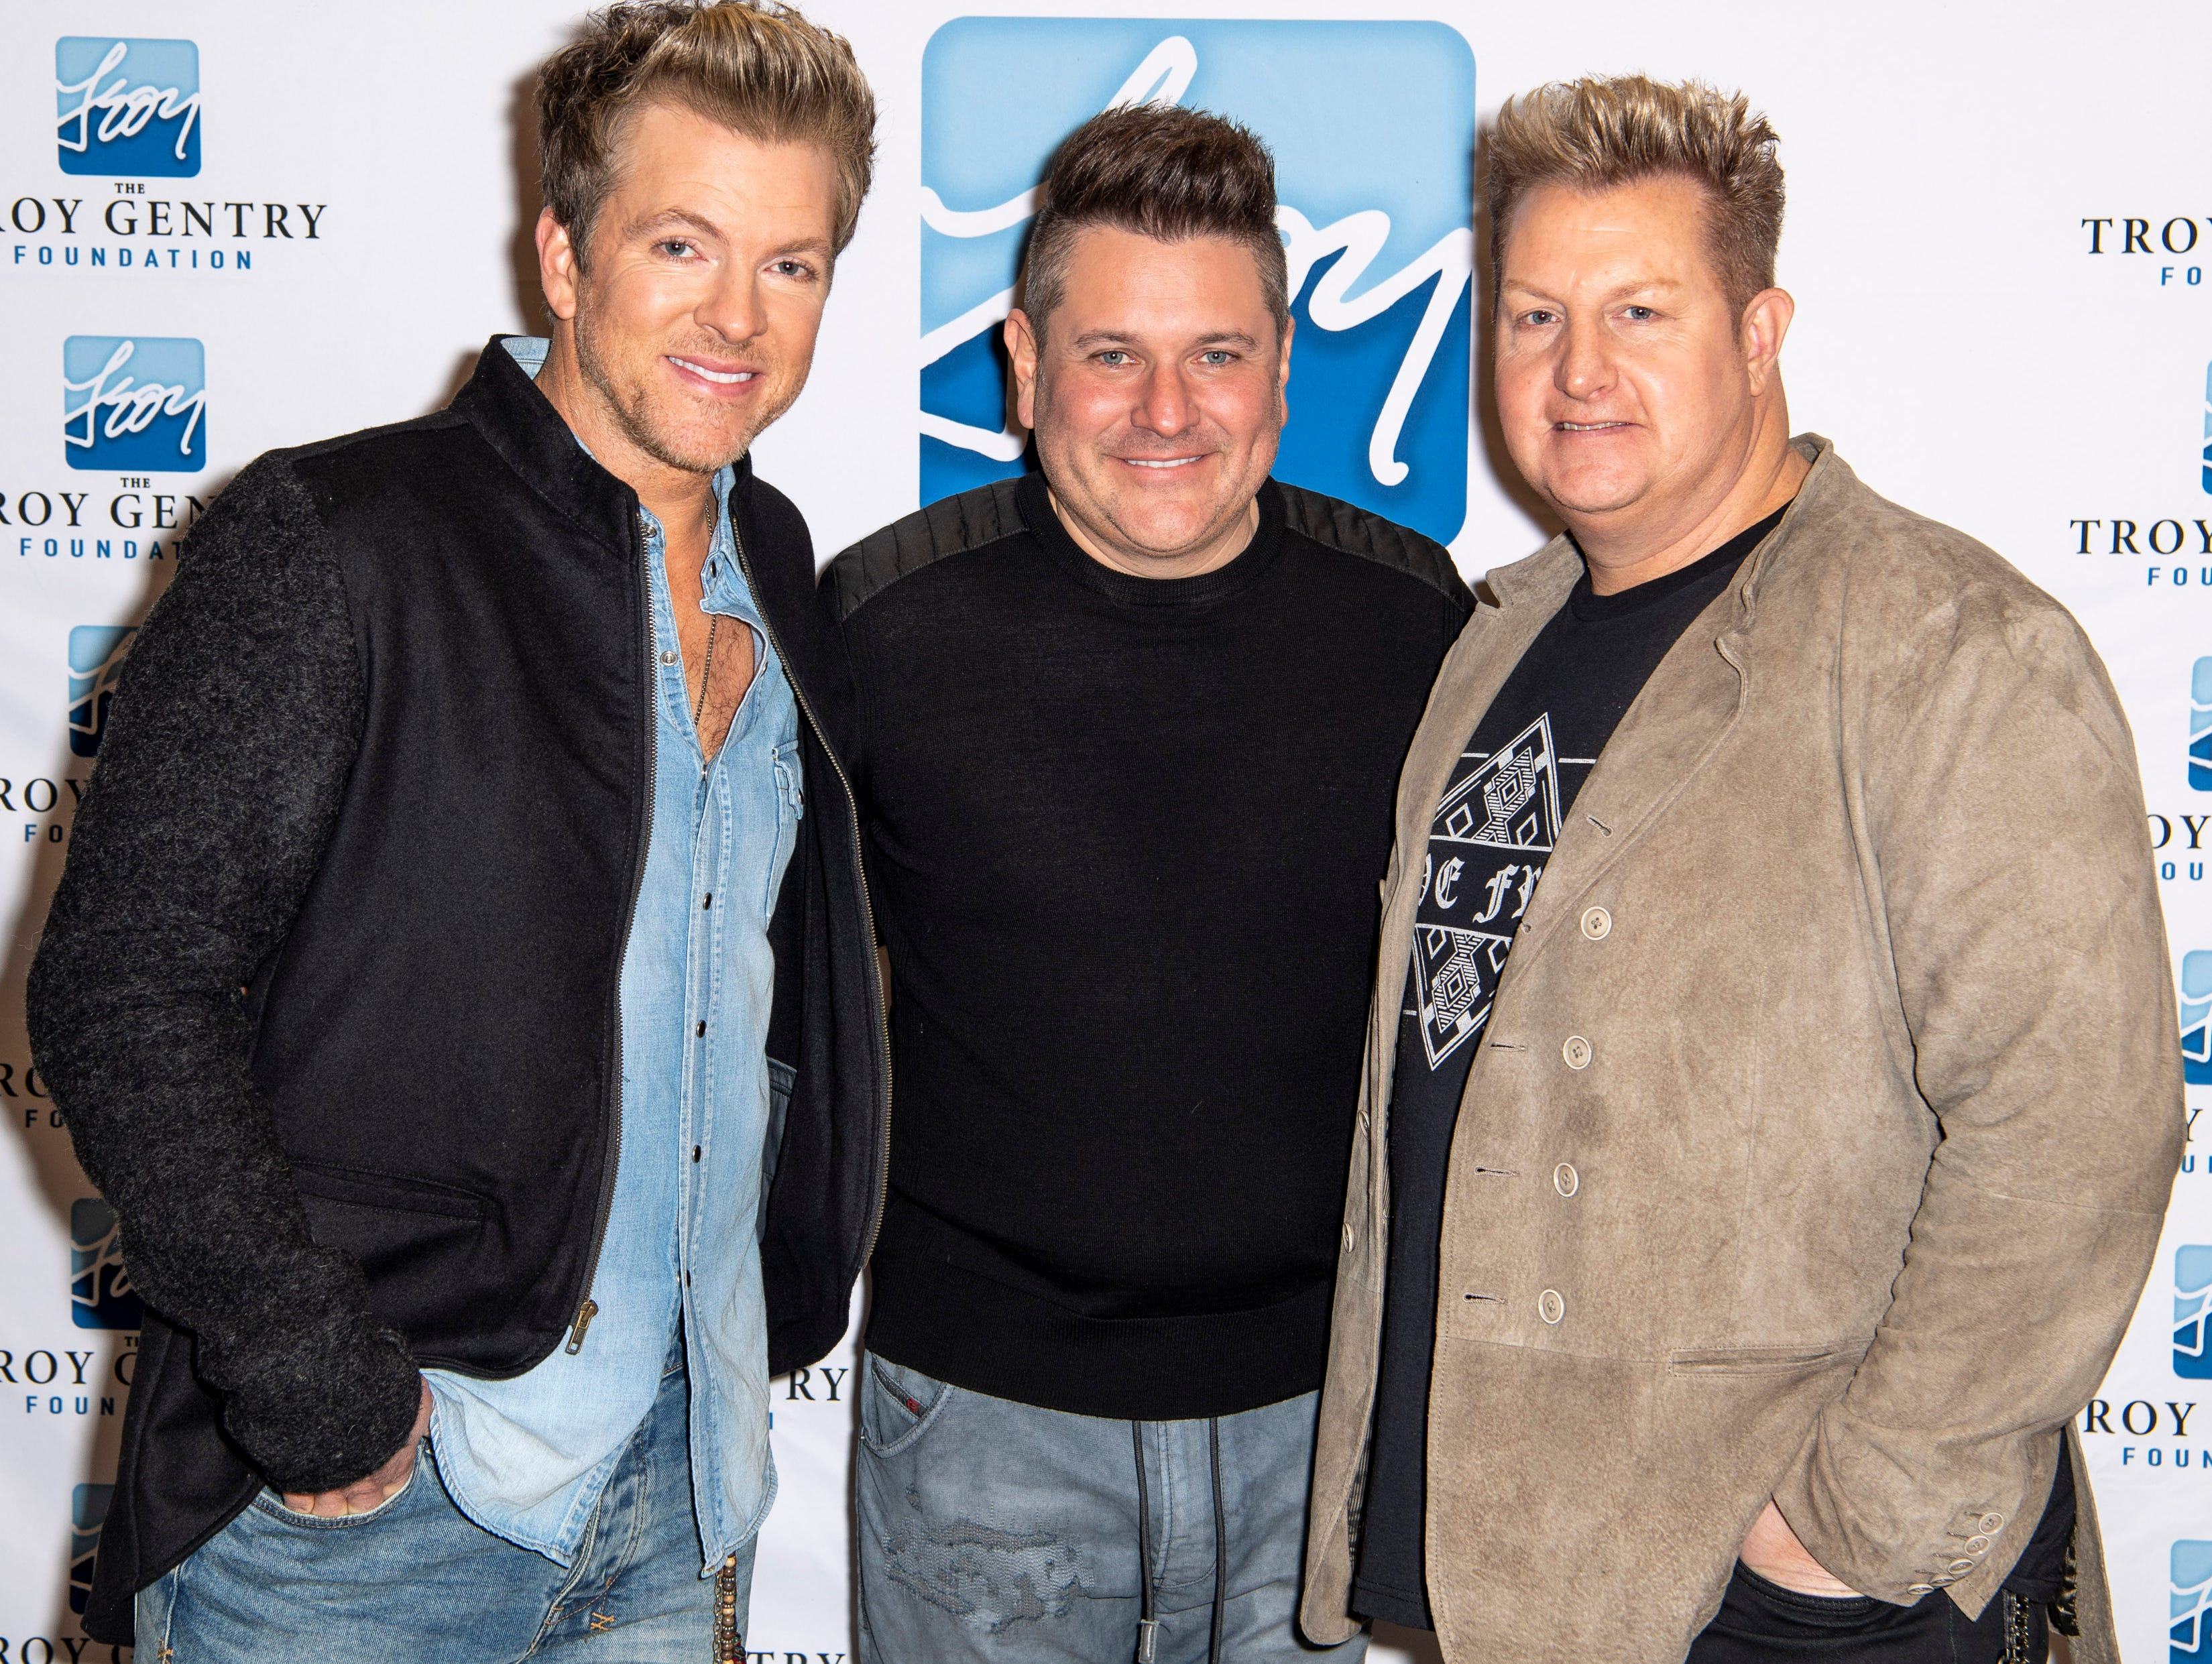 Rascal Flatts on the red carpet before the C'Ya On The Flipside Benefit Concert at the Grand Ole Opry House in Nashville, Tenn., Wednesday, Jan. 9, 2019.